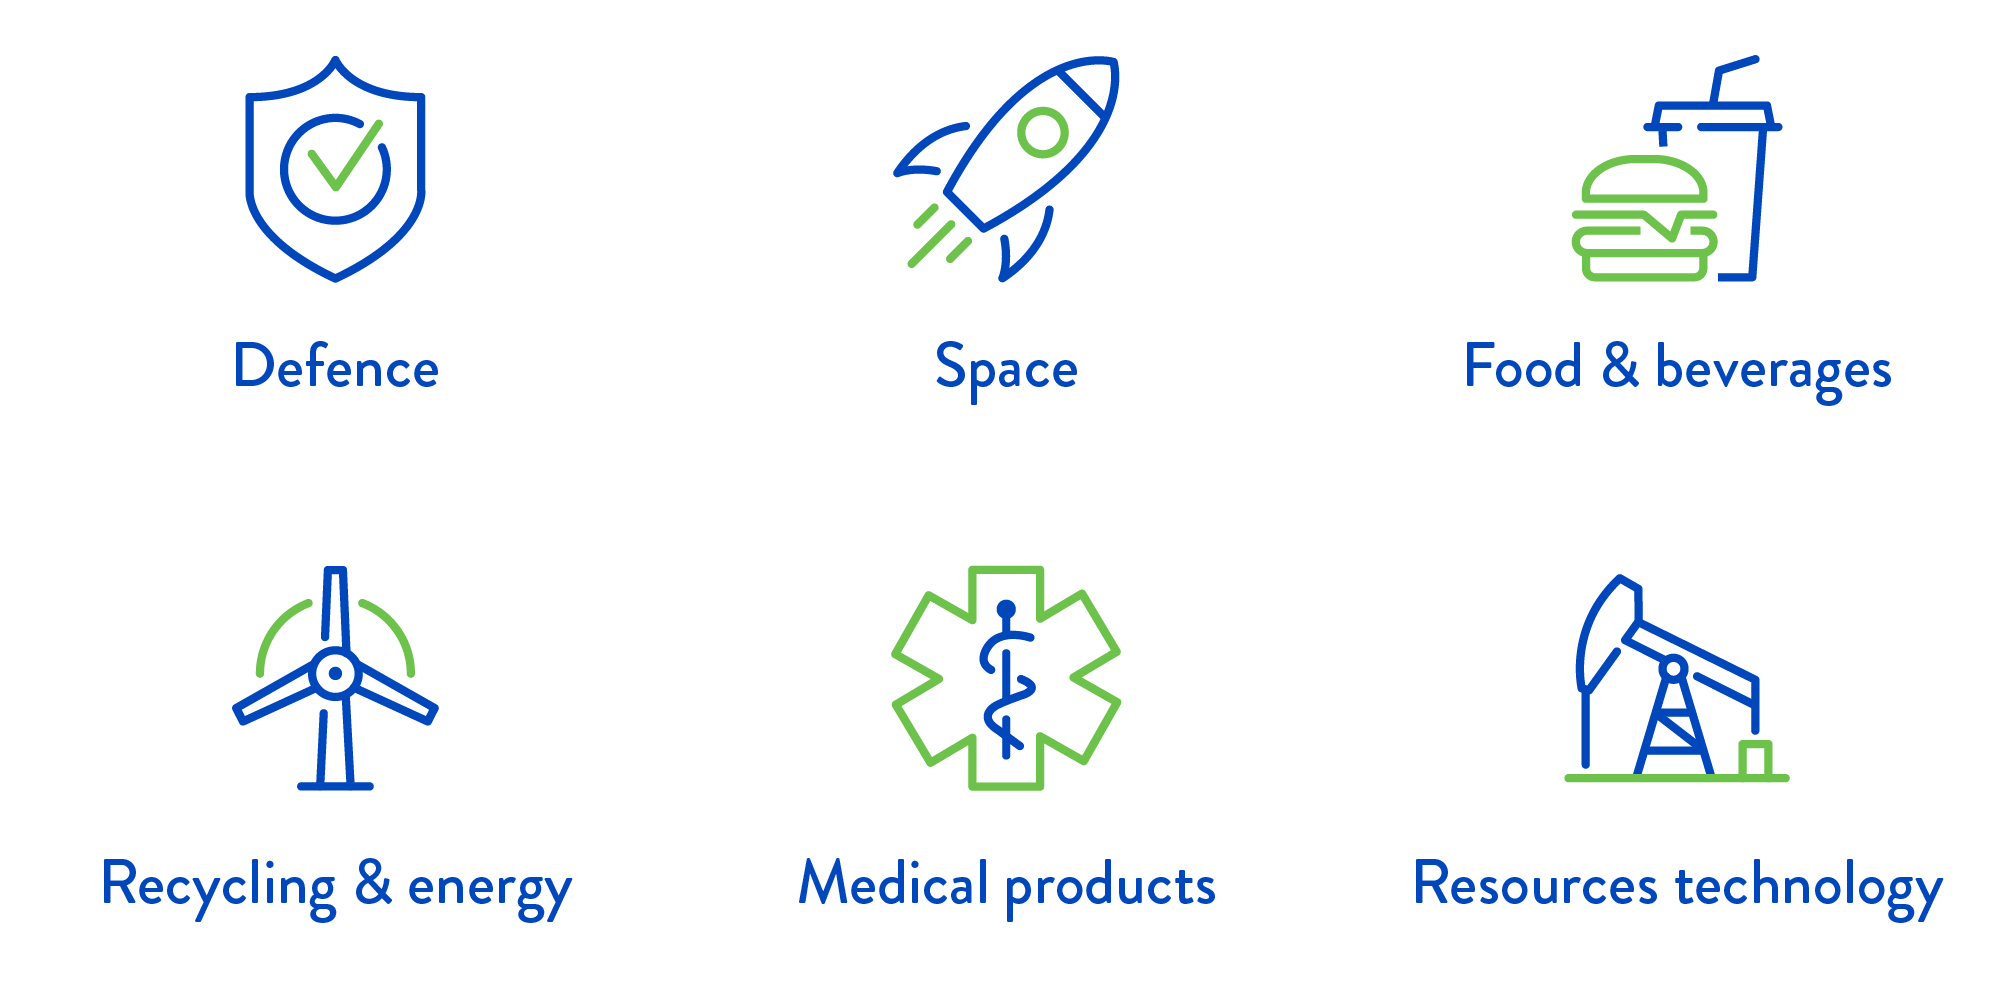 Iconographics which represents defence, space, food and beverages, recycling and clean energy, medical products, resources technology and critical minerals processing industries